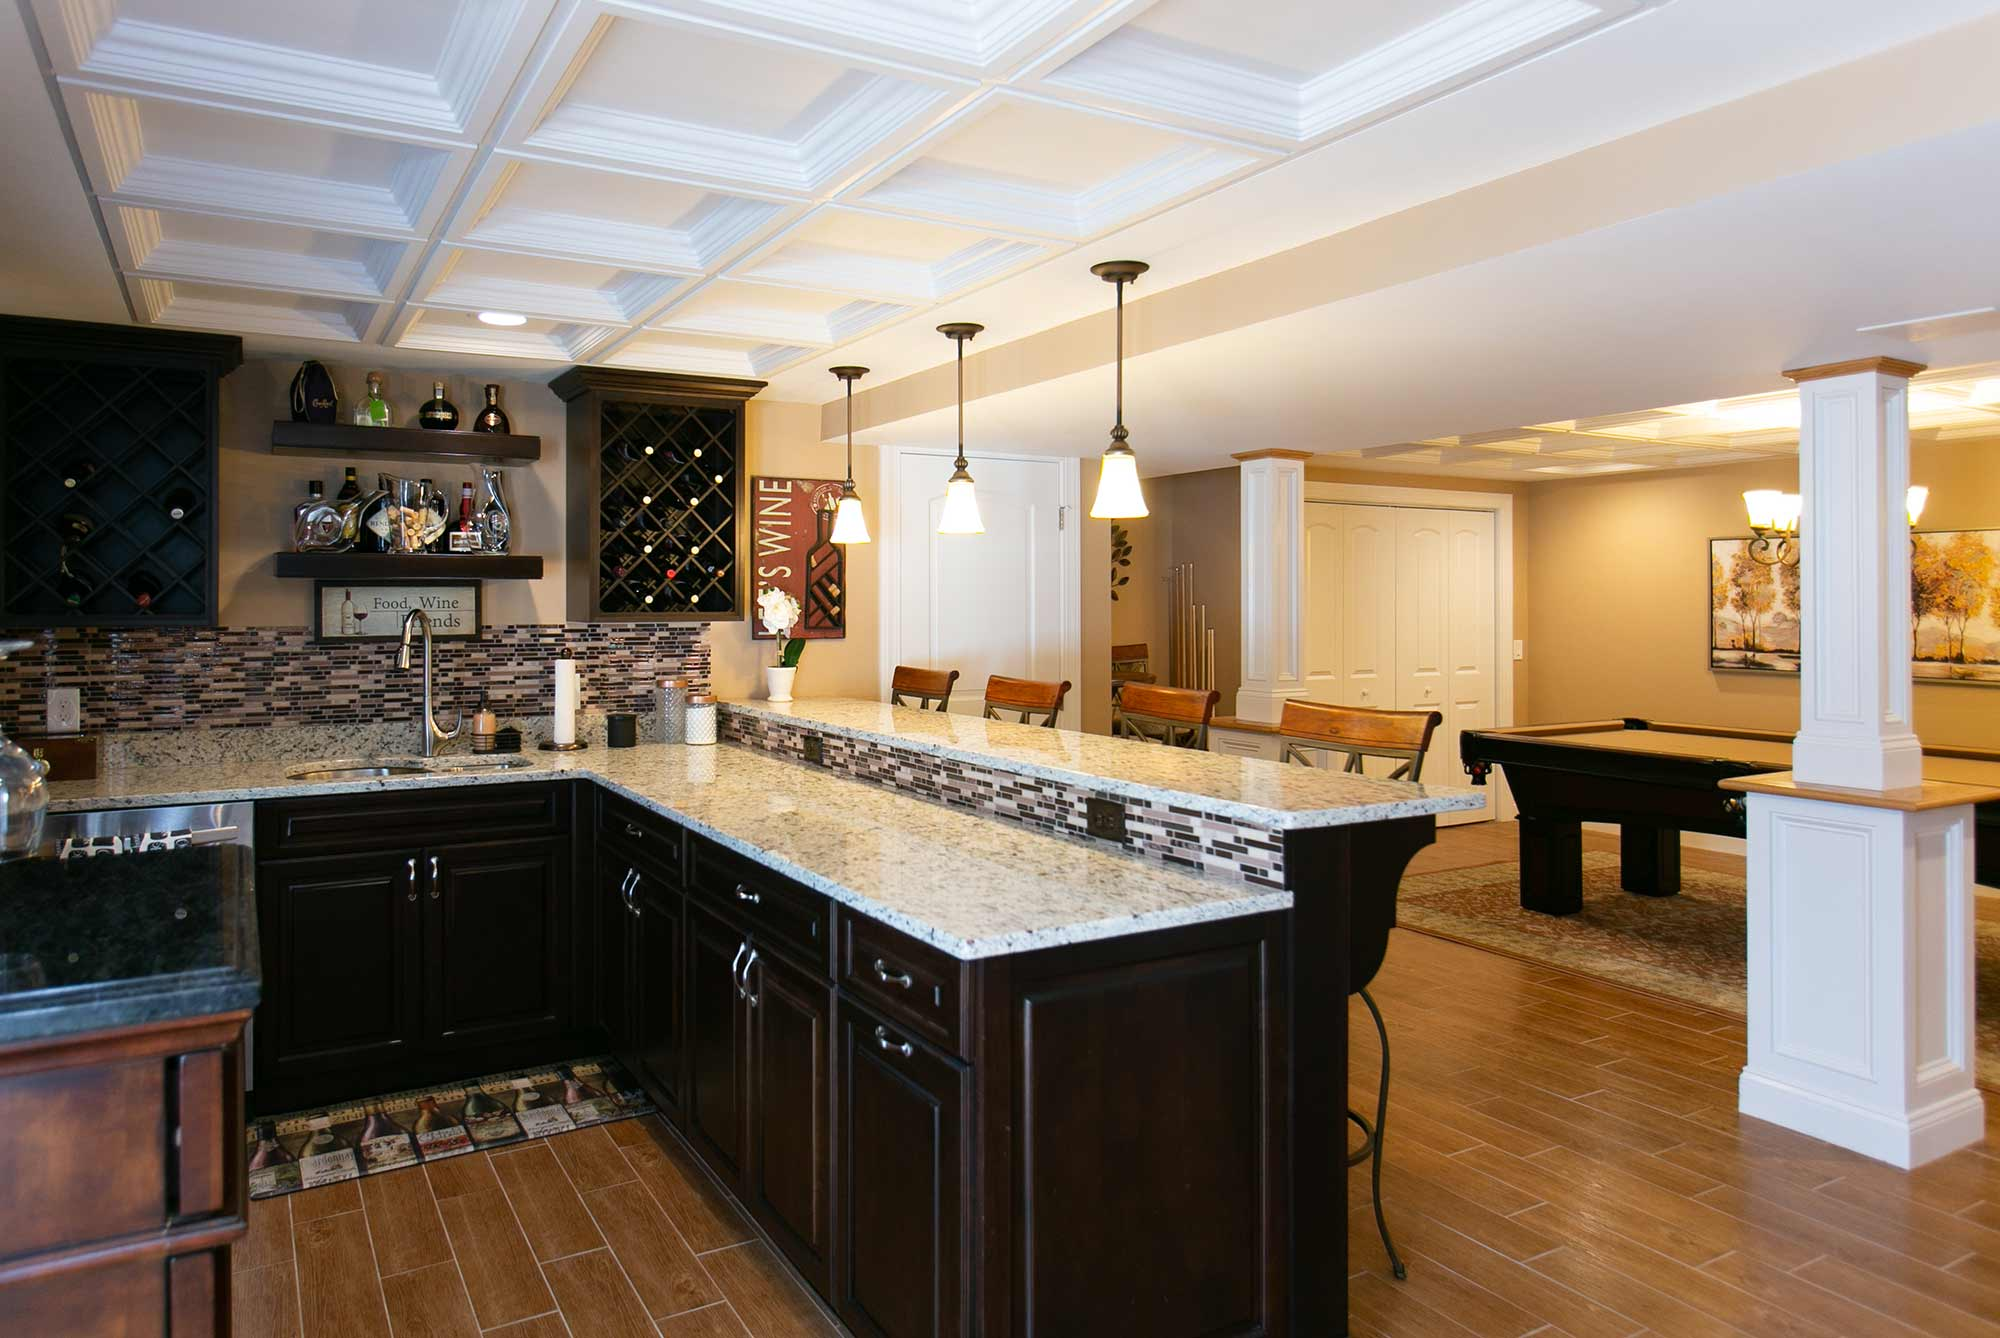 Bica Finished Basement Kitchen